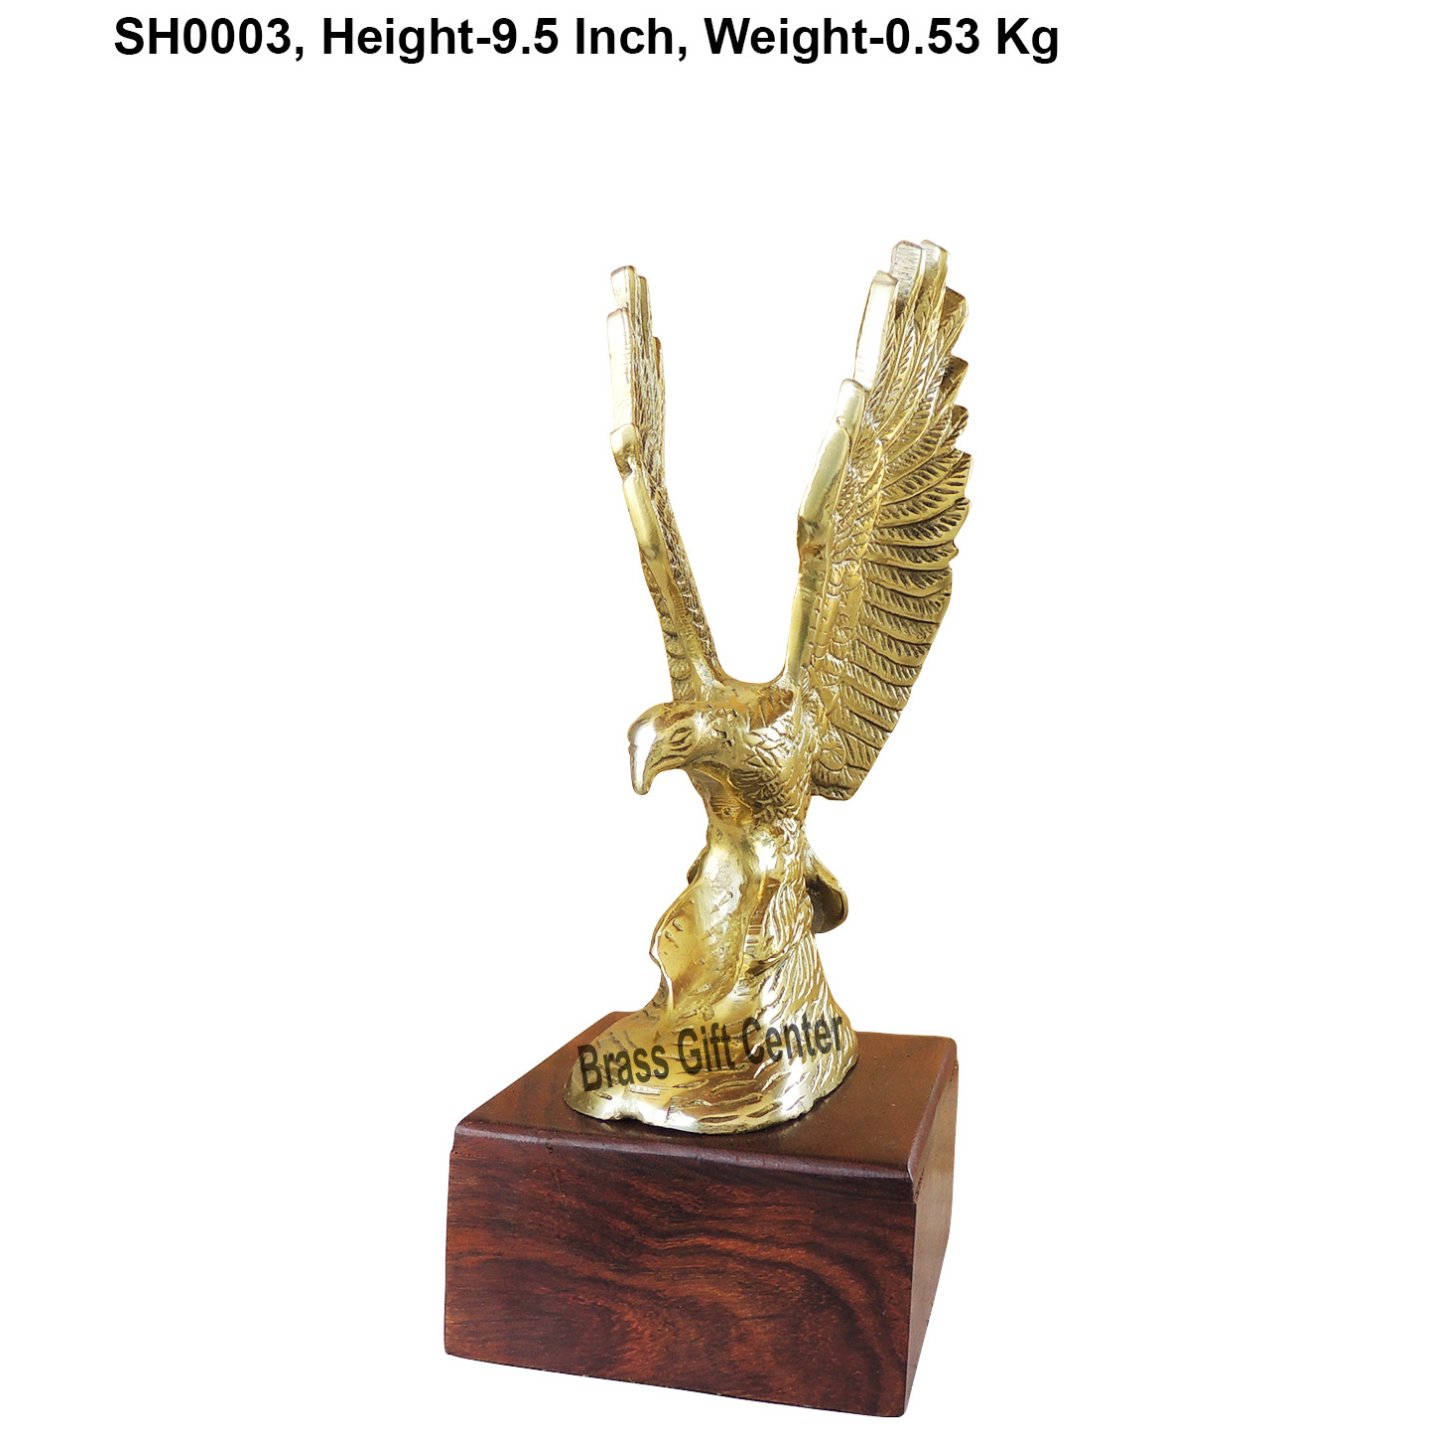 Metal Eagle Statue In Brass Finish With Wooden Base - 9.5 Inch  (SH0006)